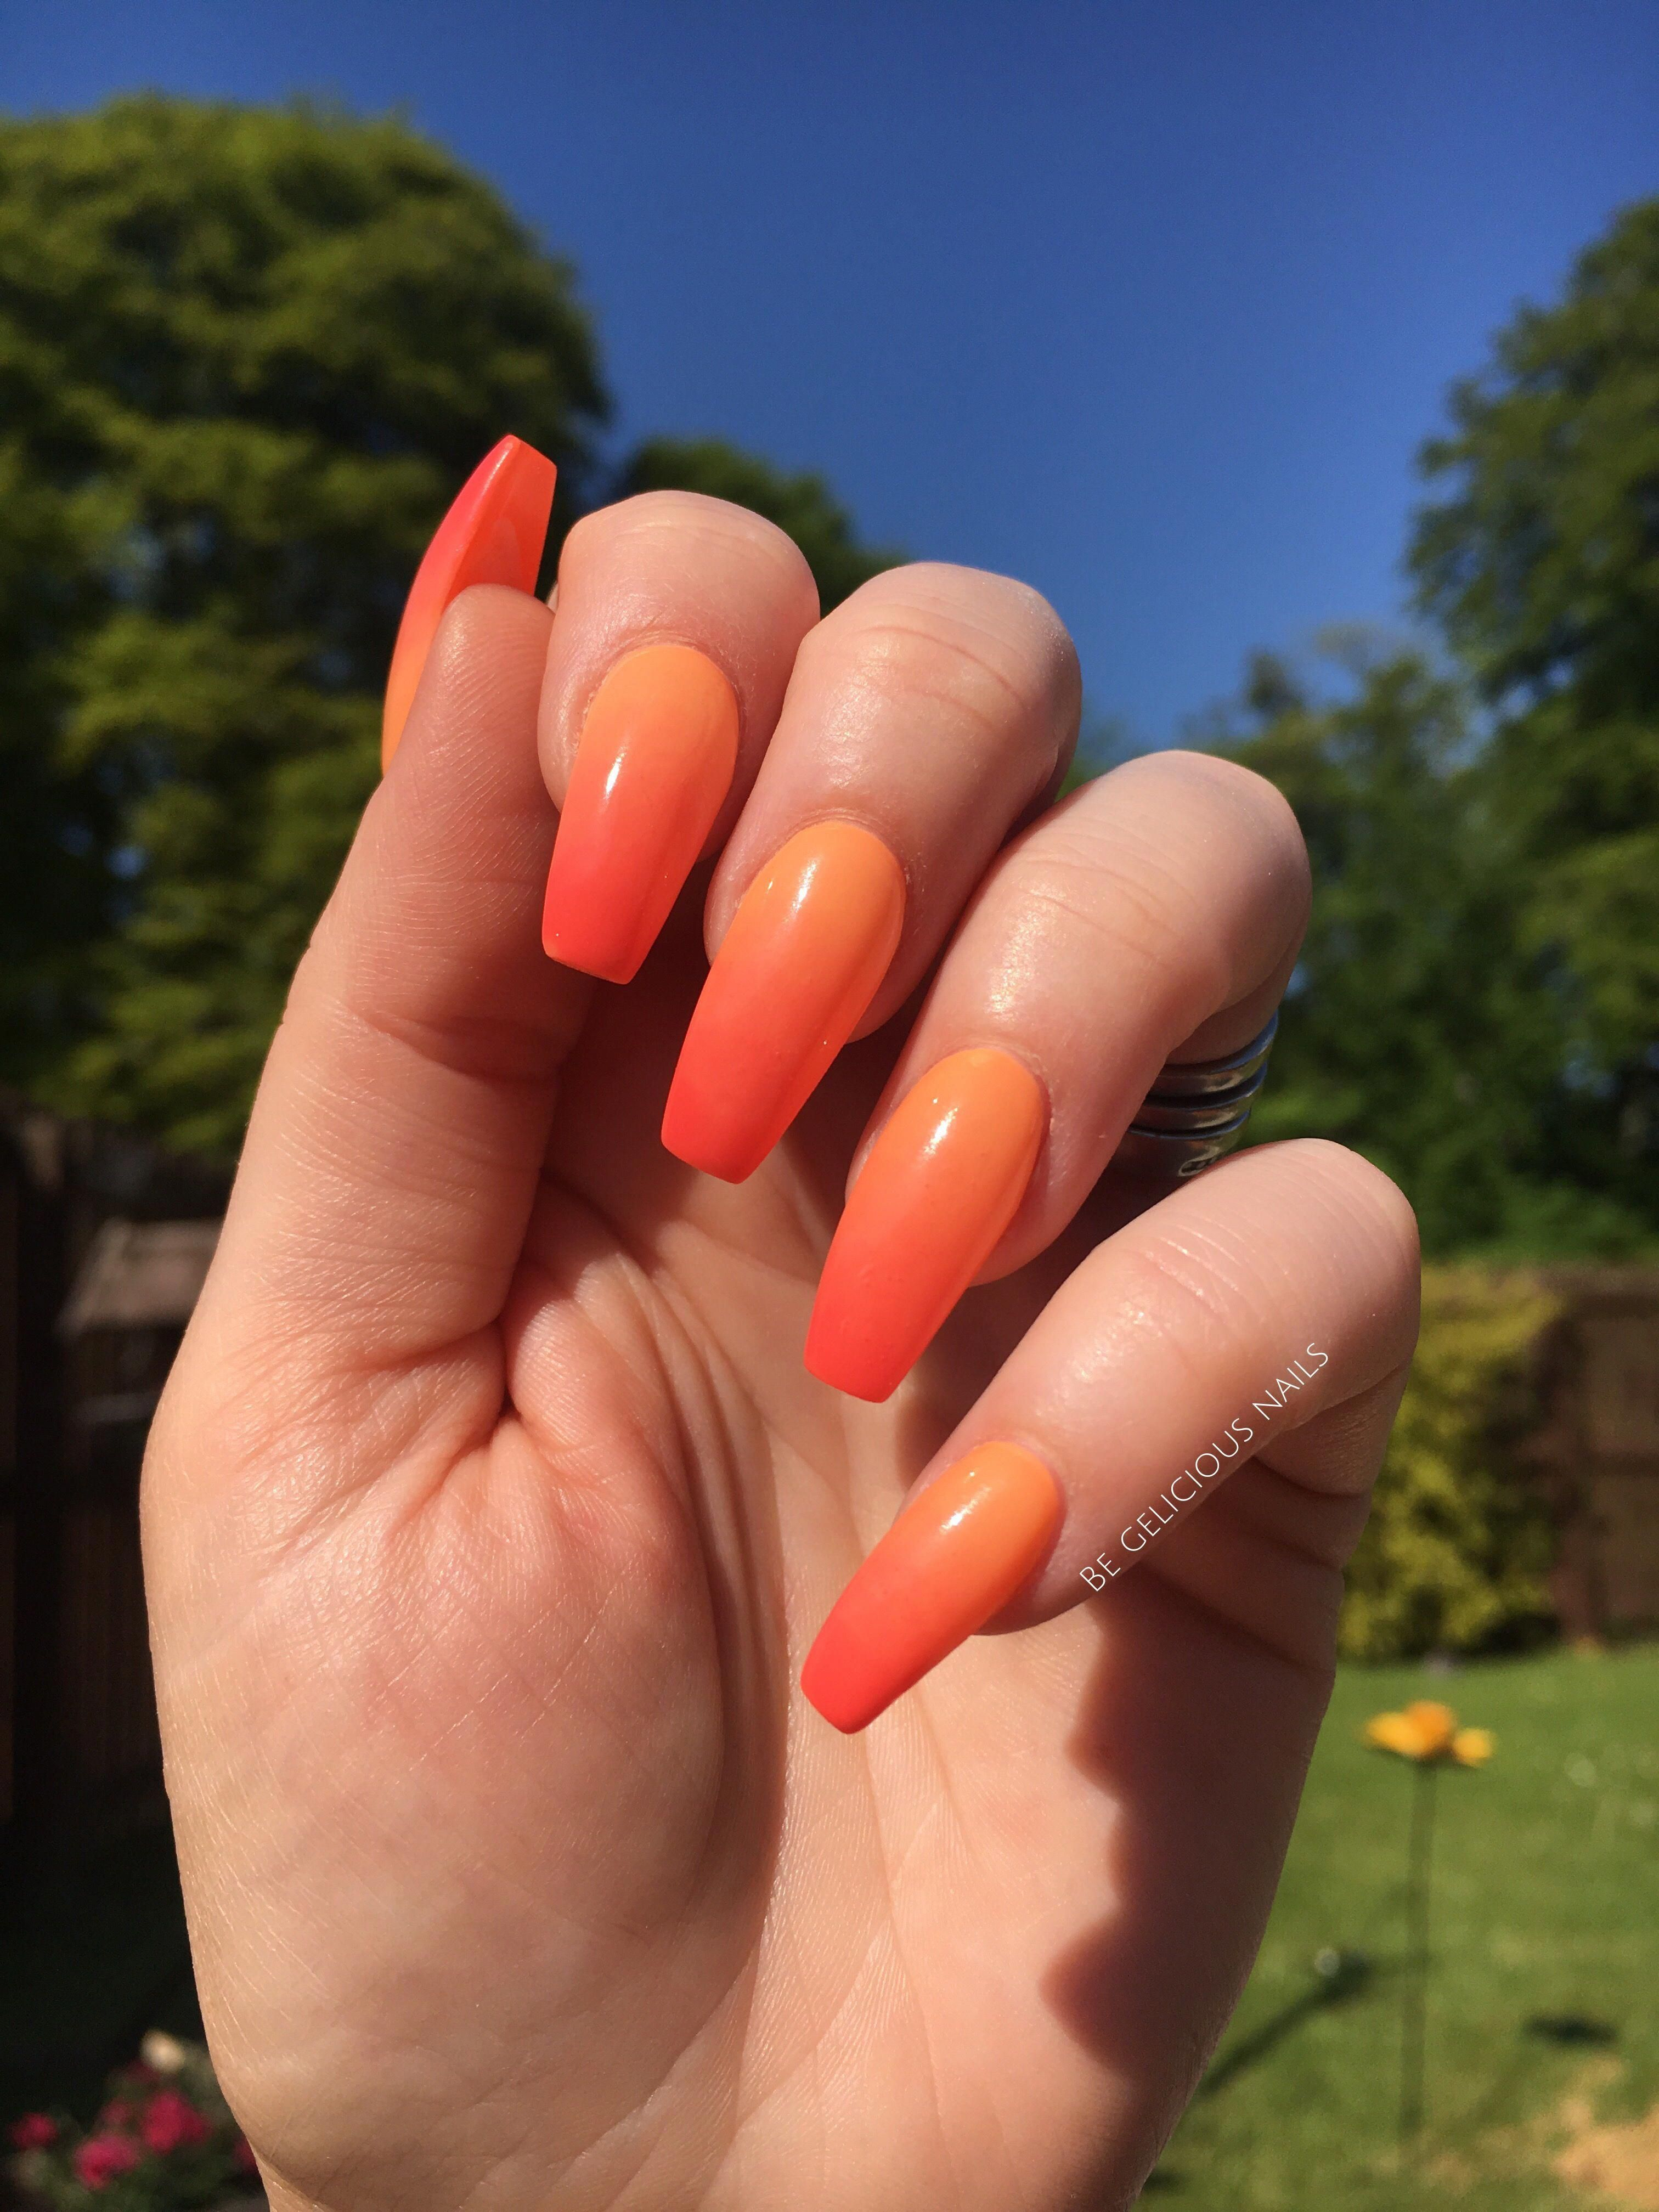 Pretty Nails Best Plans 3753498911 To Try Find True Inspiration Here Brightsummernails Neon Orange Nails Orange Ombre Nails Red Orange Nails